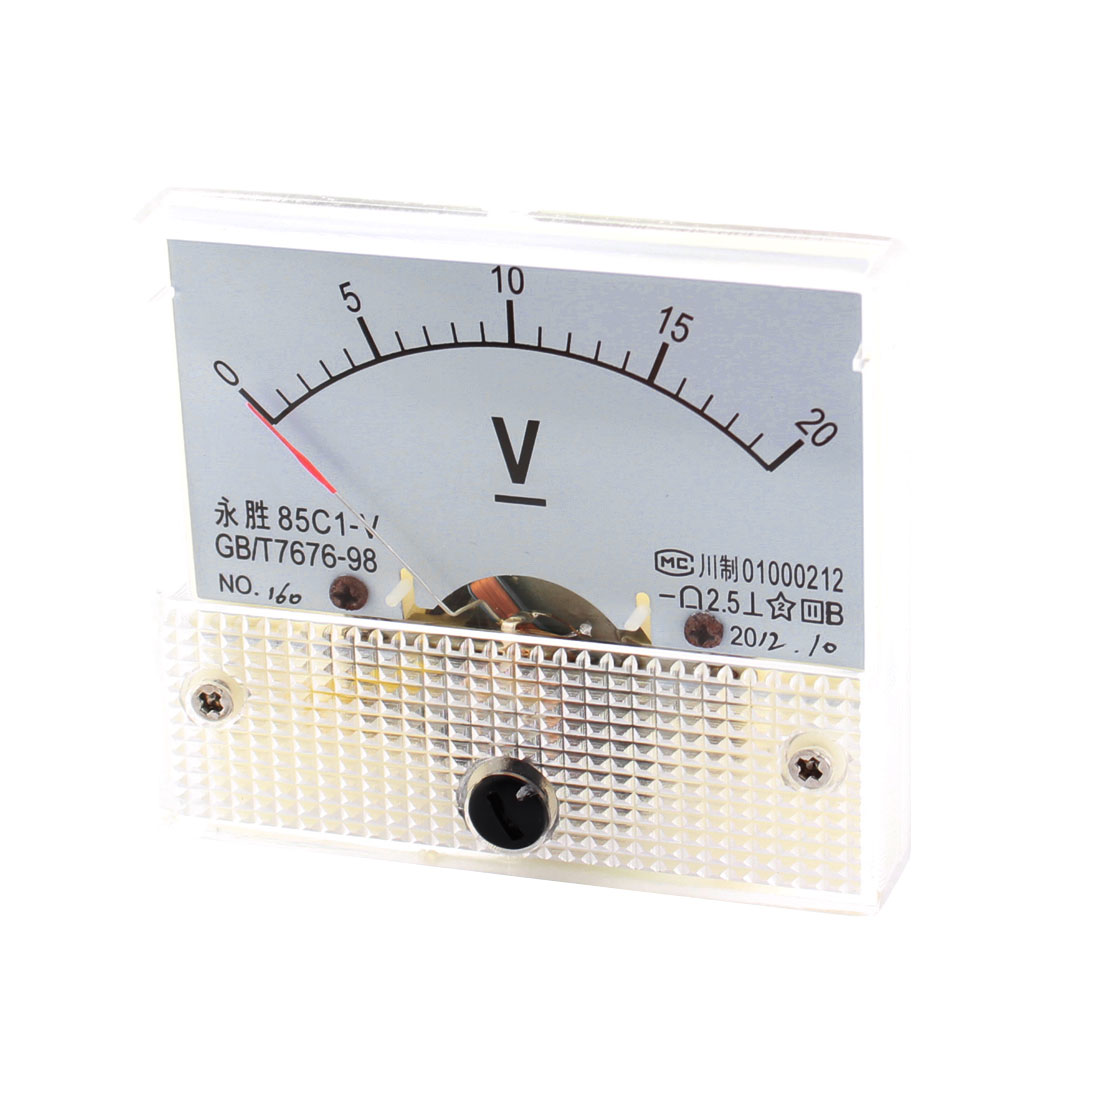 Class 2.5 DC 0-20V Range Analog Voltage Voltmeter Panel Meter 85C1